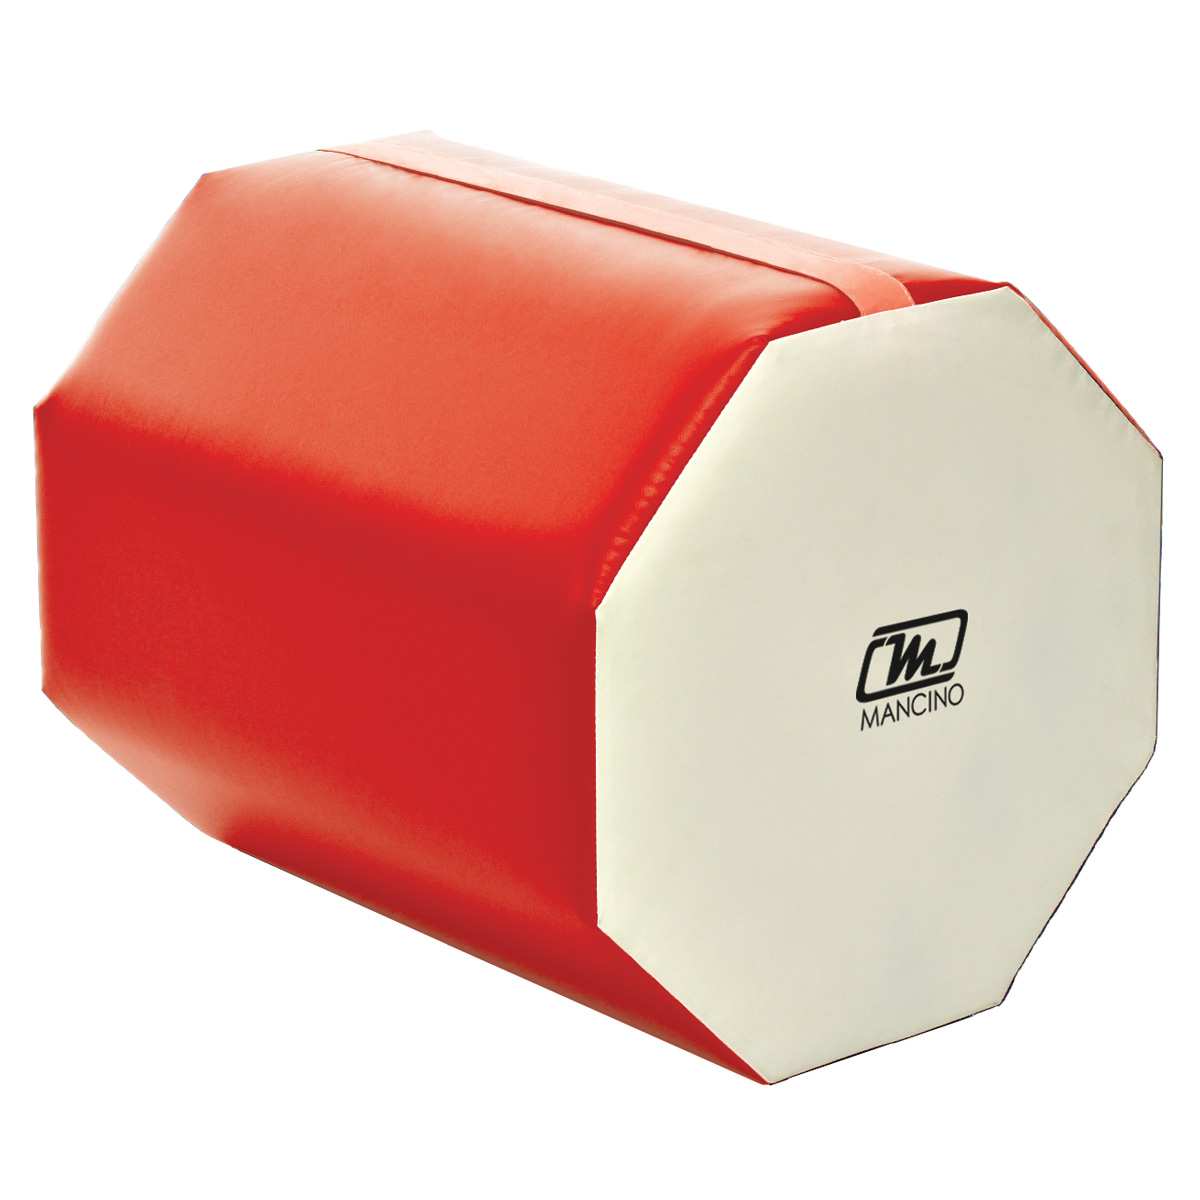 red and white octagon training shape